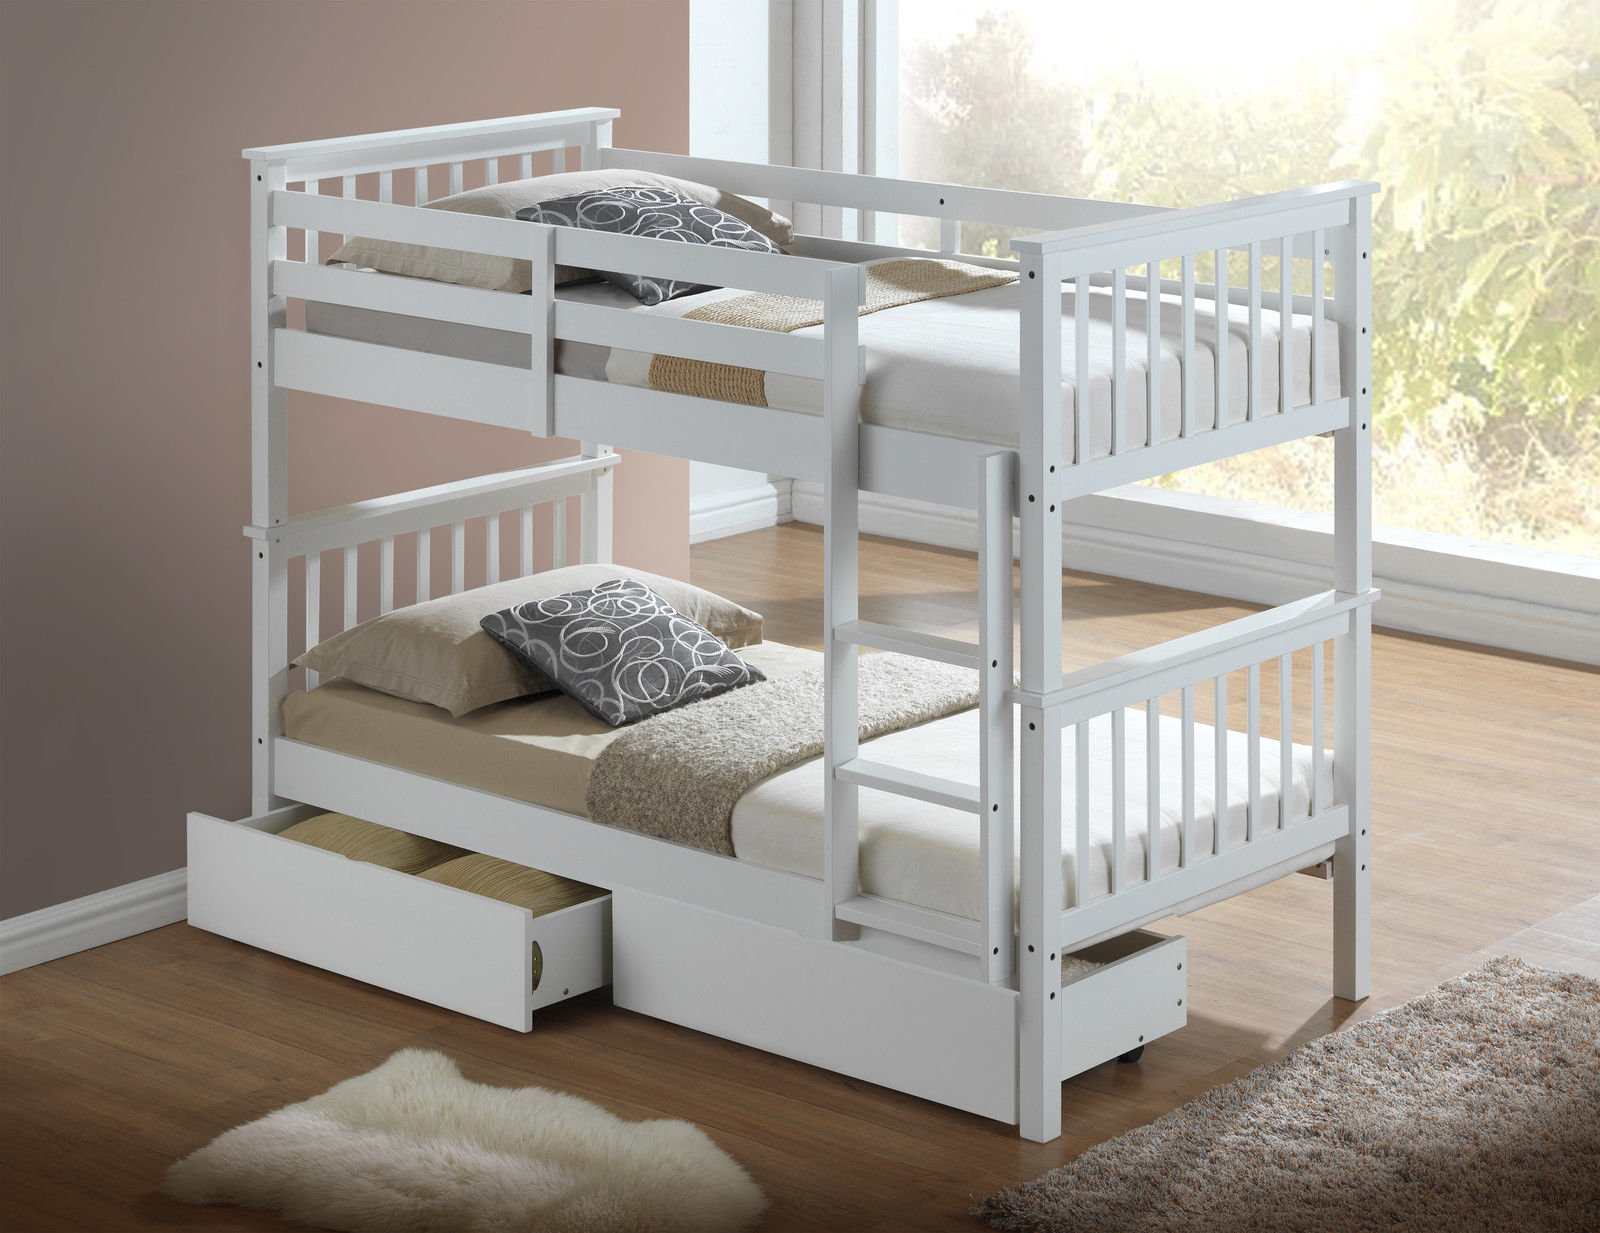 Kids Modern Bunk Bed Modern White Childrens Bunk Bed With Drawers